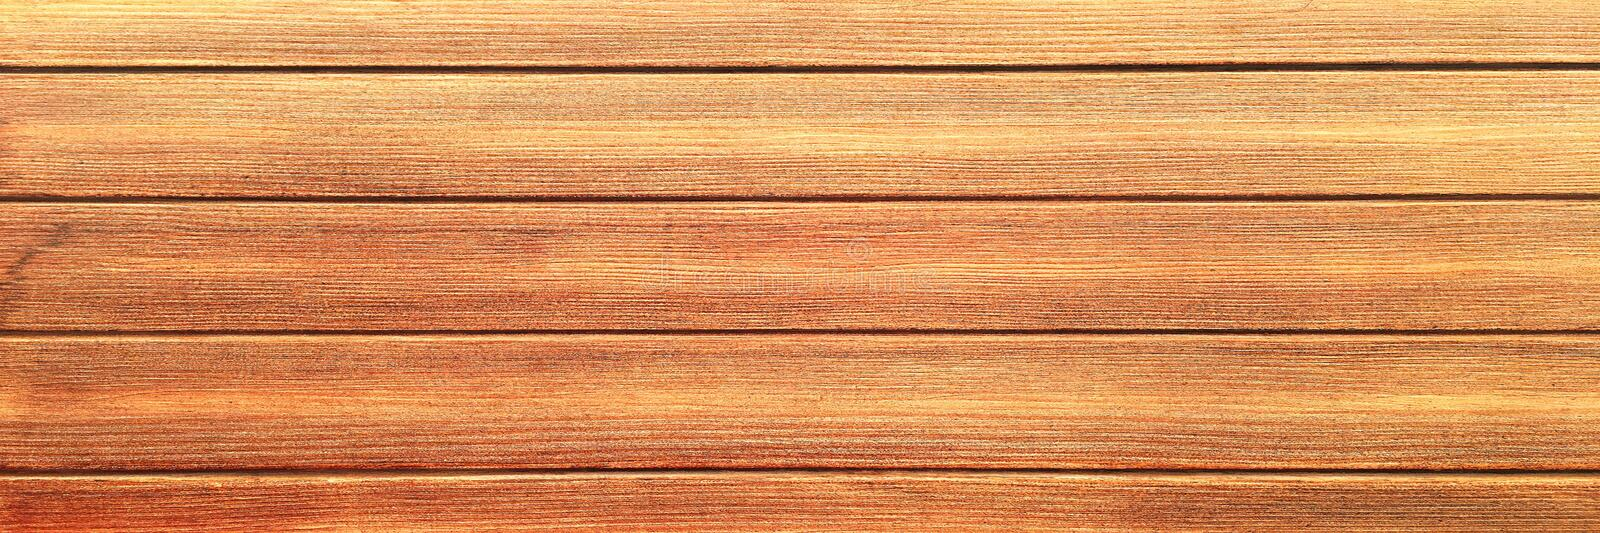 Brown wood texture, light wooden abstract background royalty free stock photography